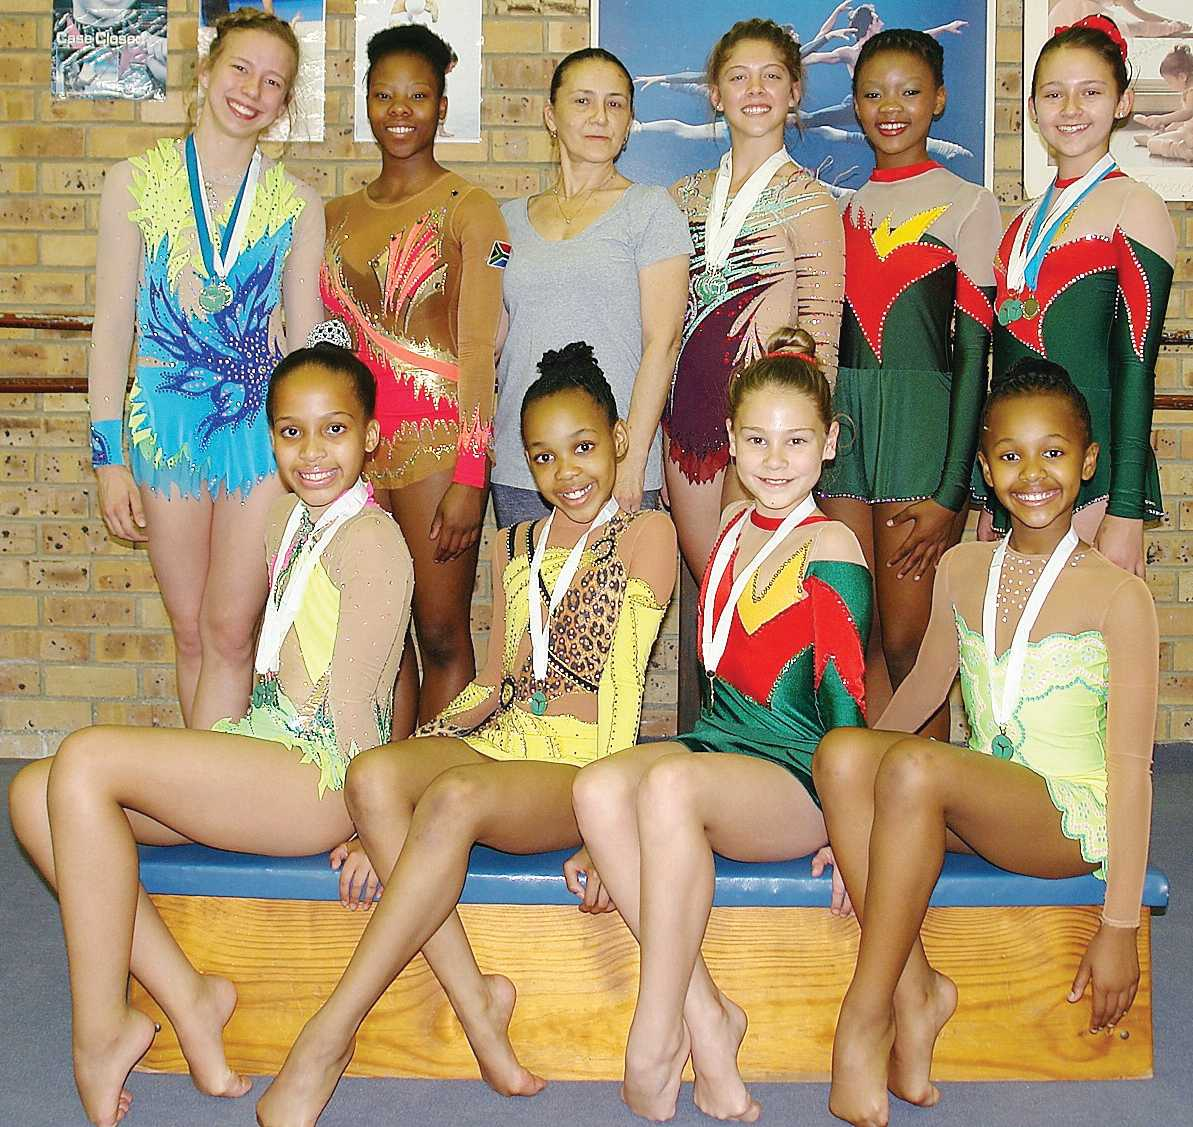 These rhythmic gymnasts excelled and achieved the following places, (back) Rozel Coetzee (Level 10, second place), Palesa Mohlamme (Senior Olympic, third place), Tatiana Lavrenchouk-Vizer (coach), Lilica Burger (Senior Olympic, first place), Hlompho Tlale (Level 4), Kara Muller-Van Schalkwyk (Level 4, first place and highest overall score), (front) Akira Stander (High Performance 1, first place), Lebo Maake (High Performance 2, first place), Delrike Maritz (Level 5) and Siyanda Tom (Level 8, second place). Jana Erasmus (Level 5, third place) and Candice Uys (Senior Olympic, second place) were absent.